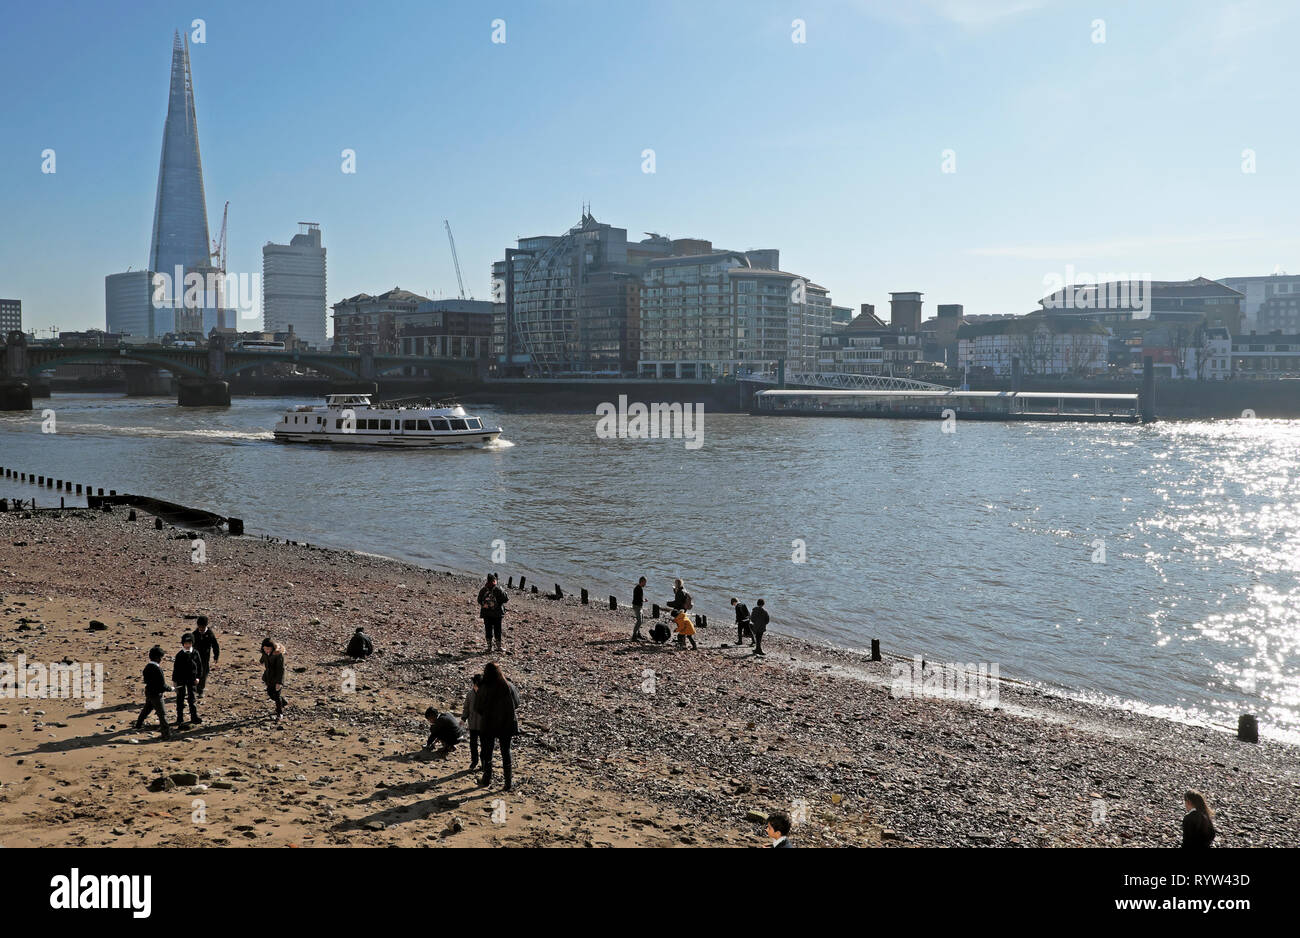 View of boat on River Thames at low tide tourist riverboat, Shard building & schoolchildren mudlarking on shore in London EC4 England UK  KATHY DEWITT Stock Photo